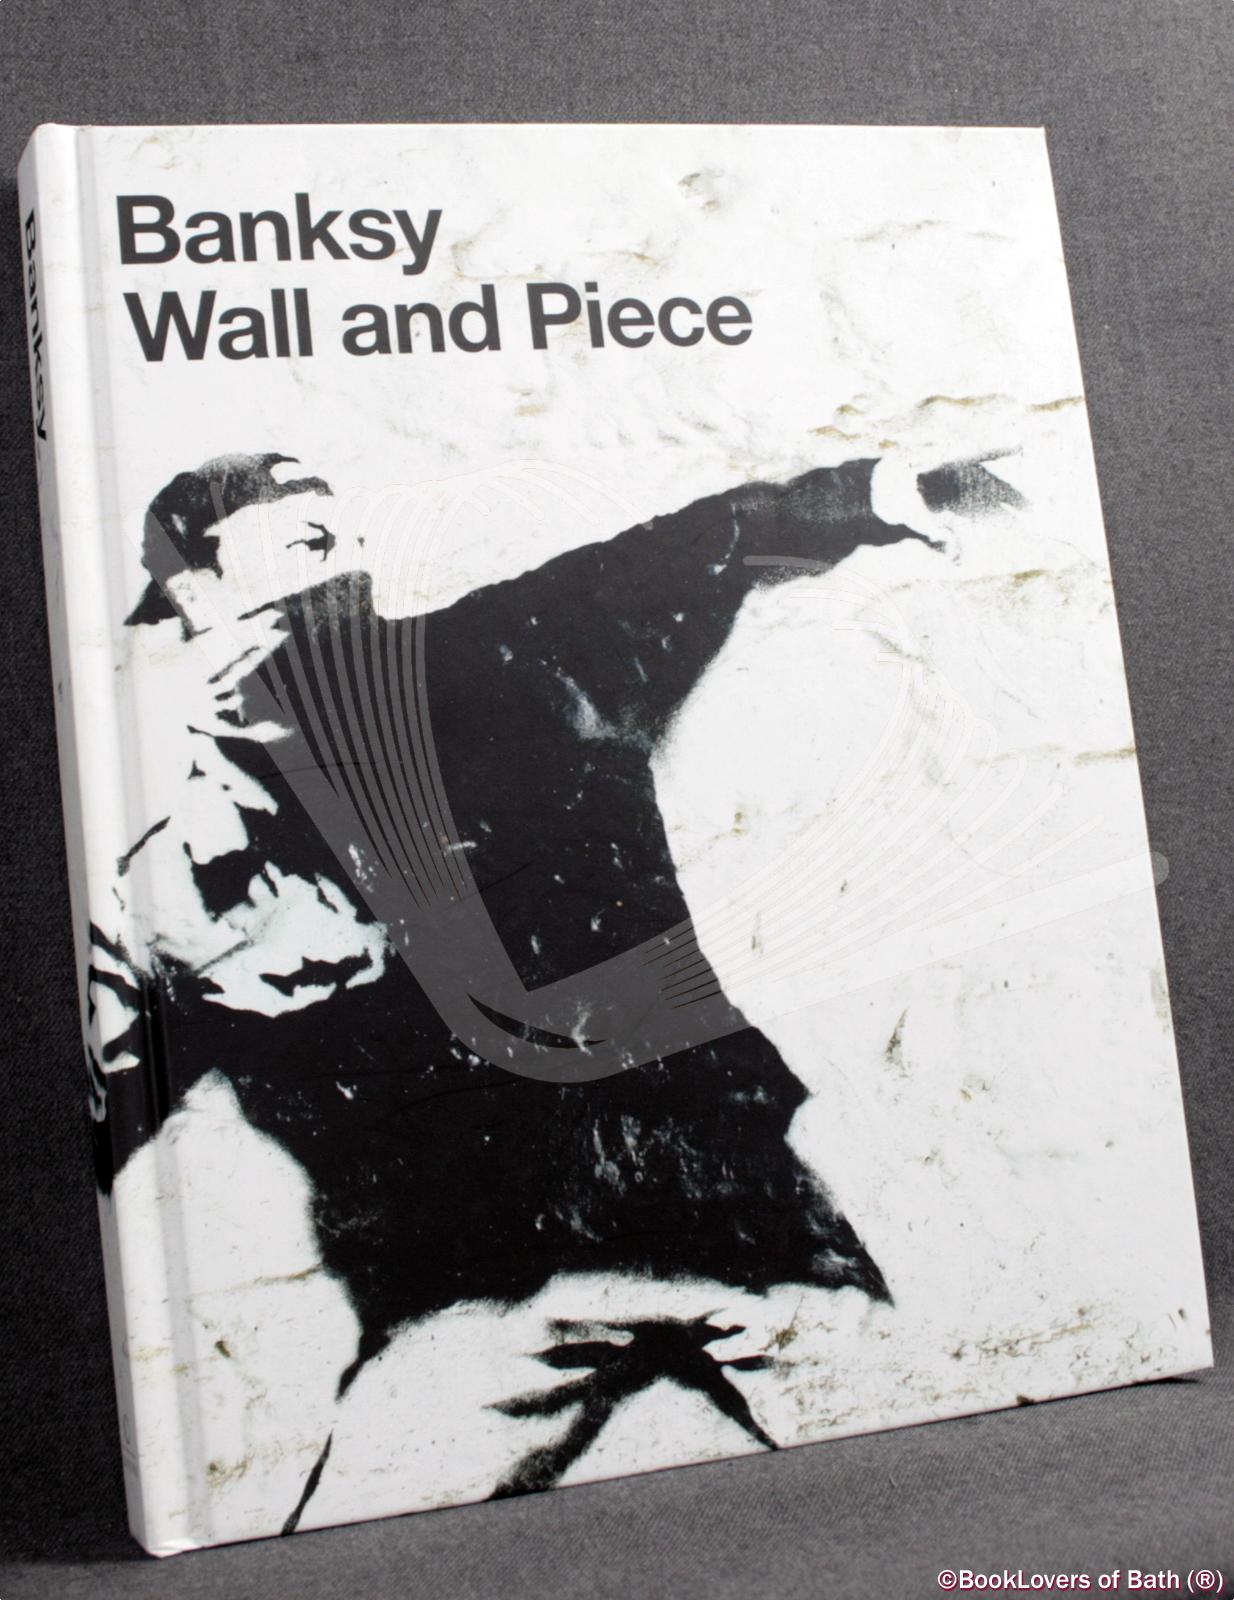 Banksy: Wall and Piece - Banksy